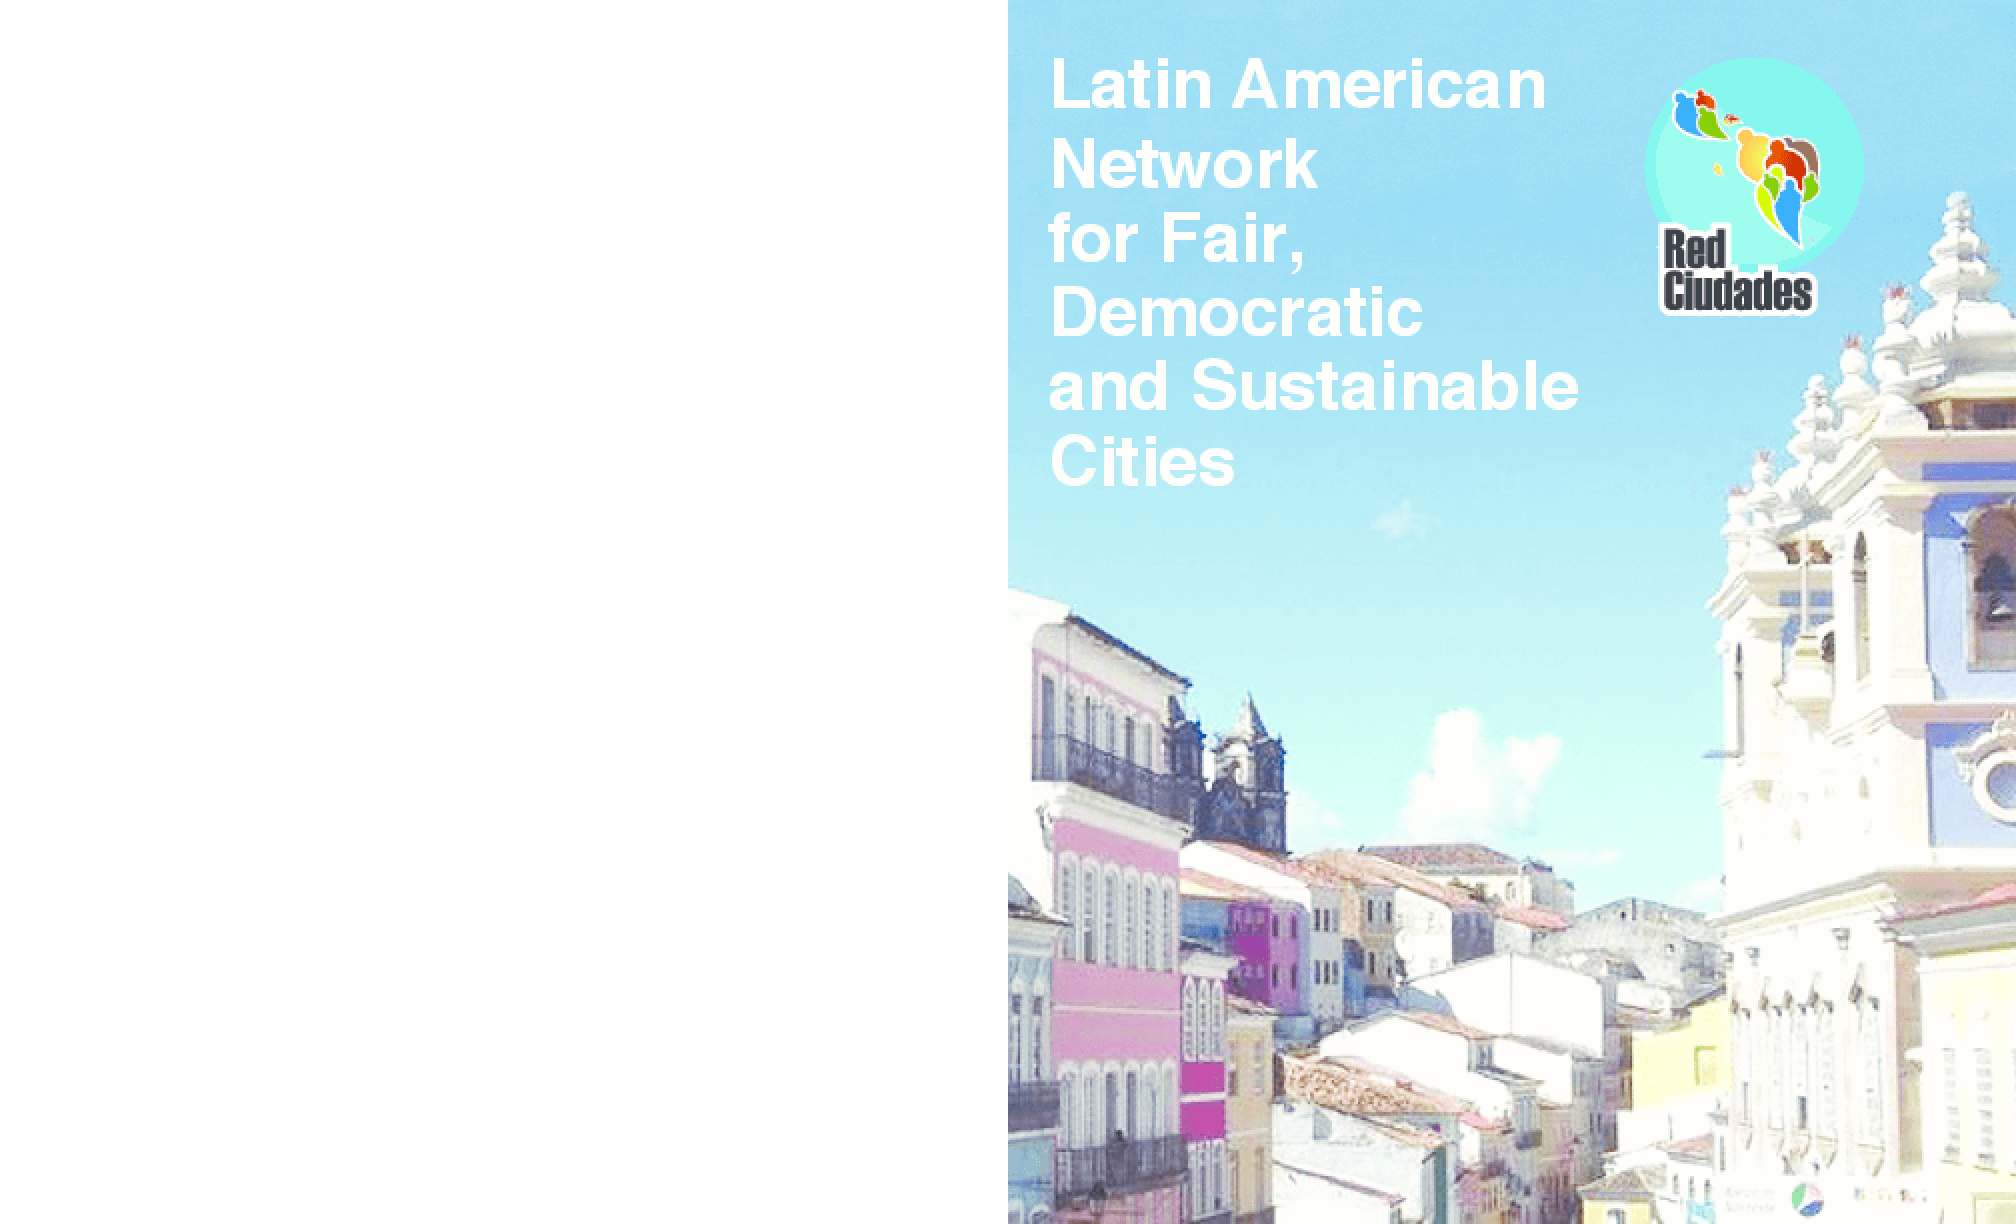 Latin American Network for Fair, Democratic and Sustainable Cities